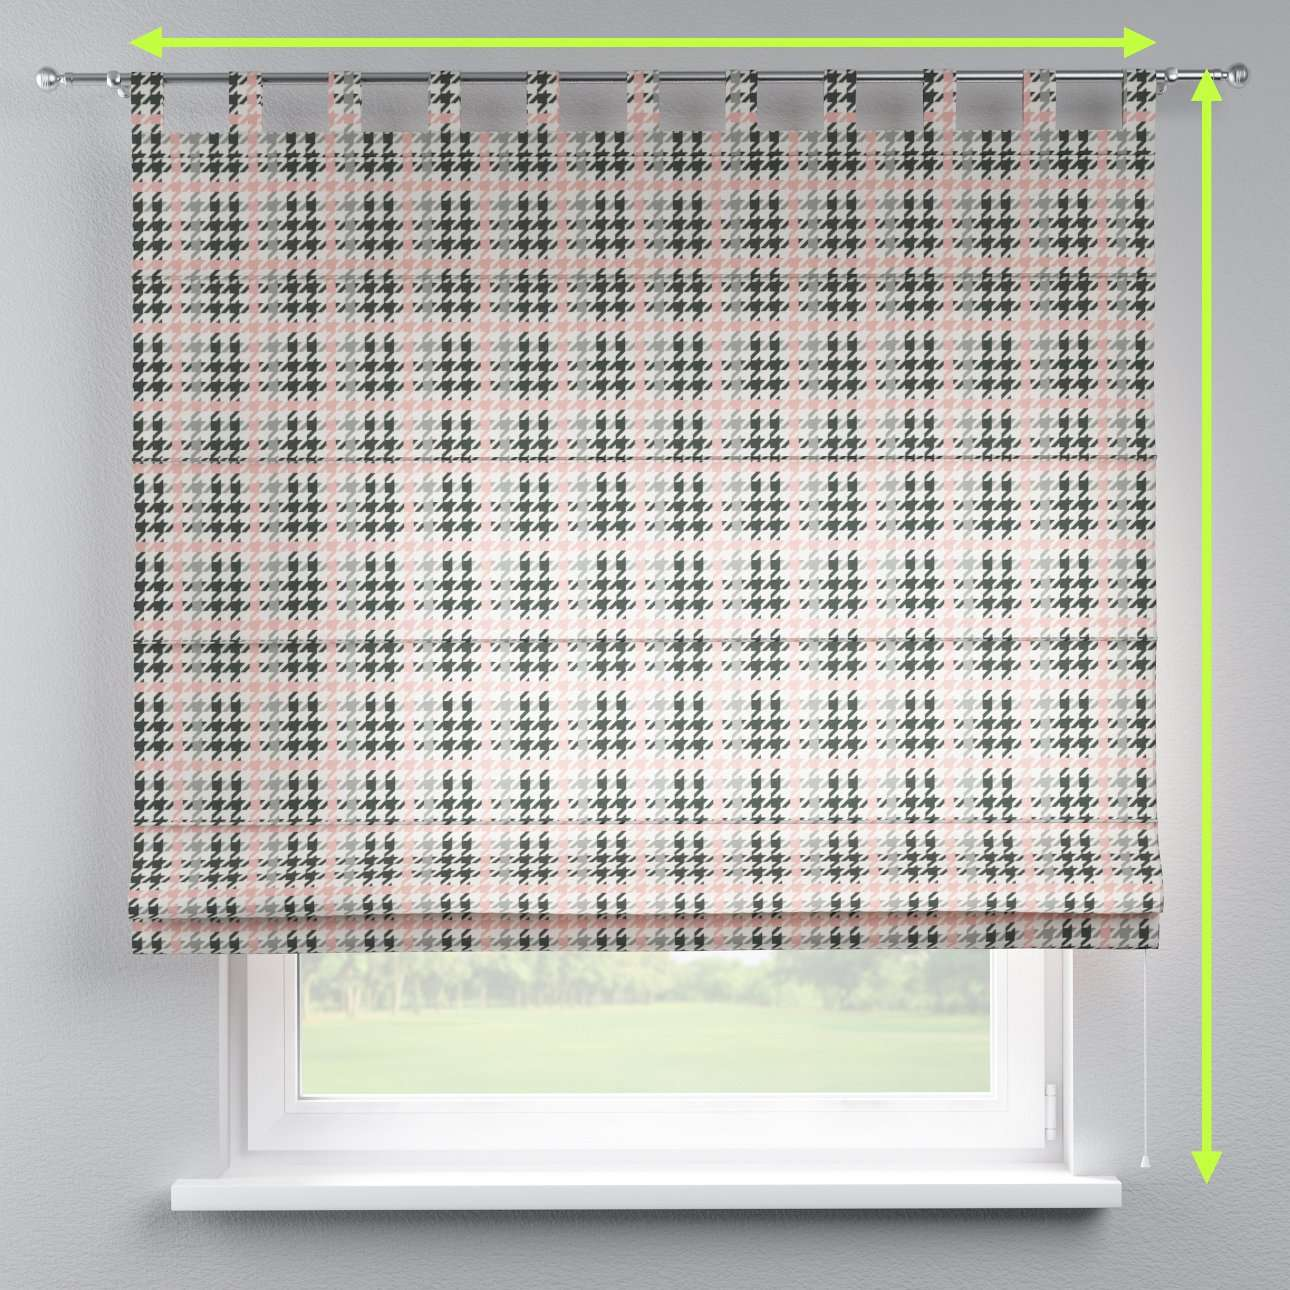 Verona tab top roman blind in collection Brooklyn, fabric: 137-75